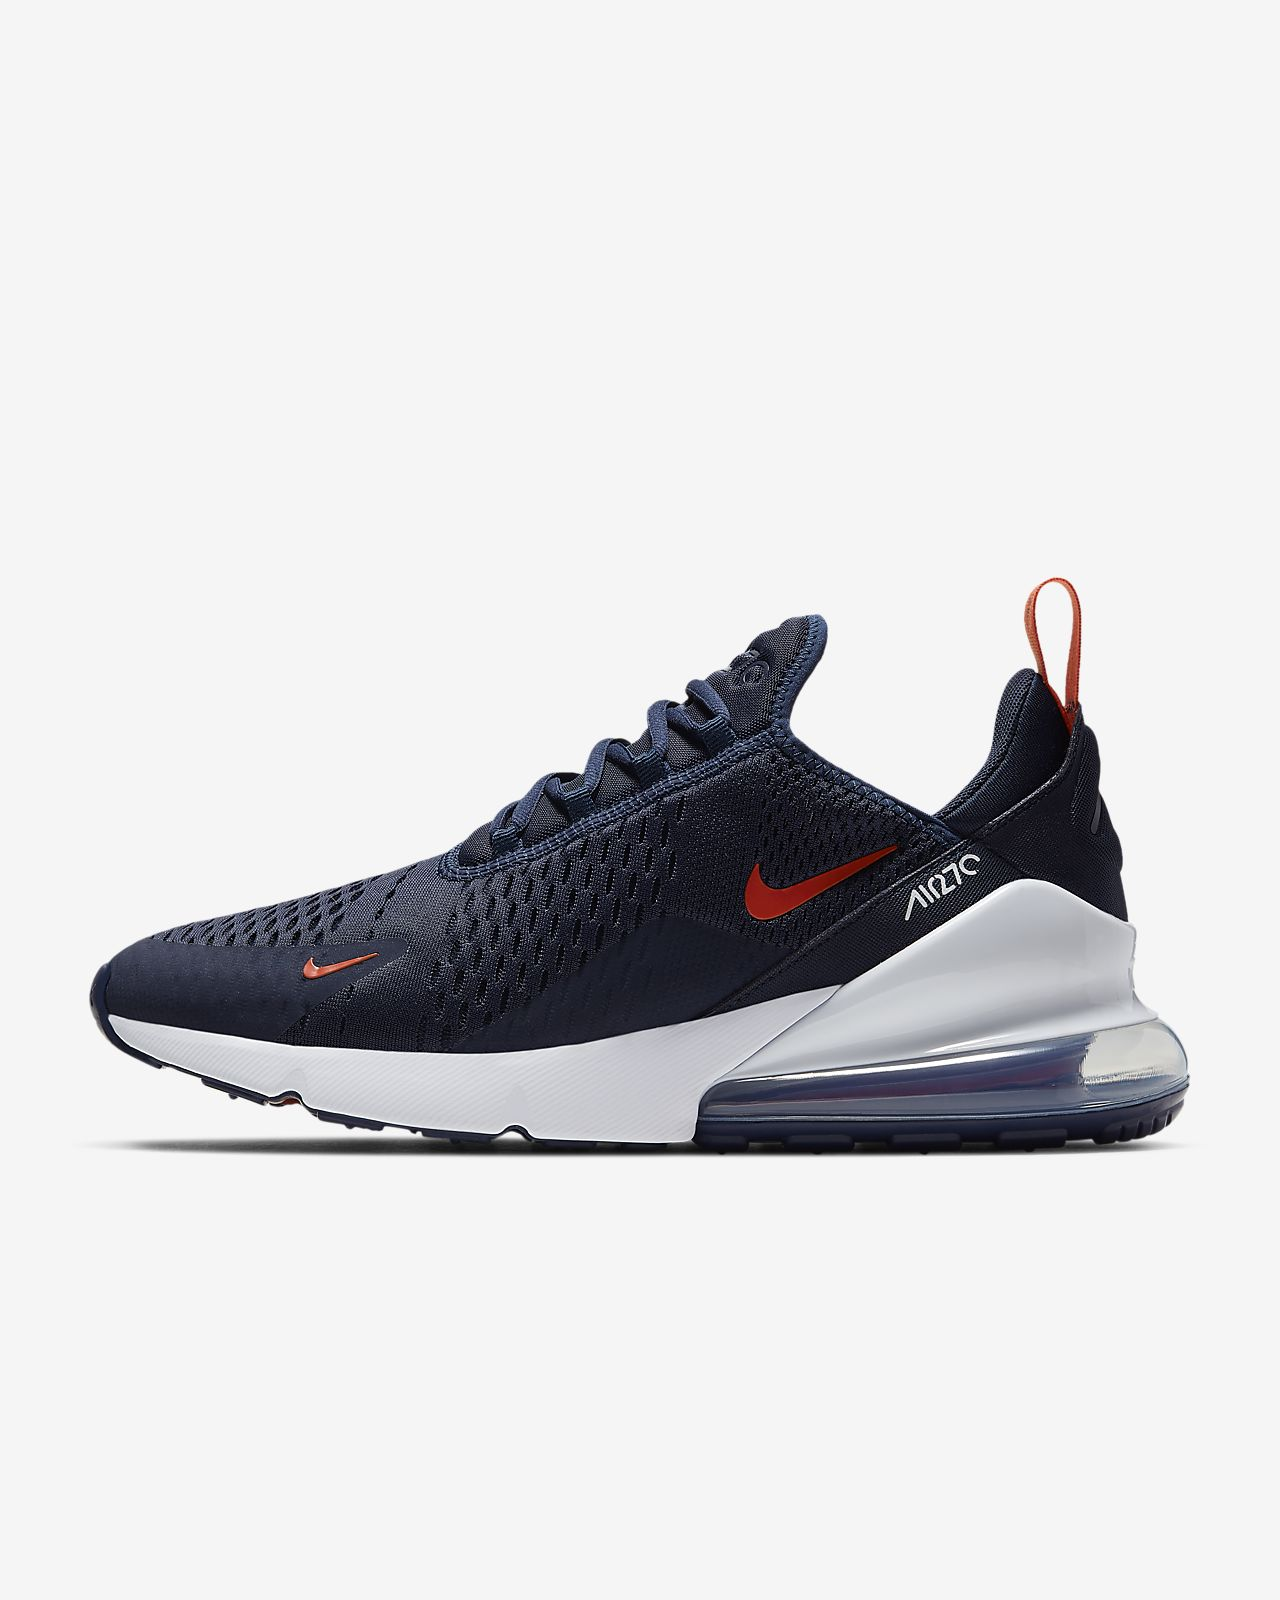 5571b031aa9 Nike Air Max 270 Men s Shoe. Nike.com GB